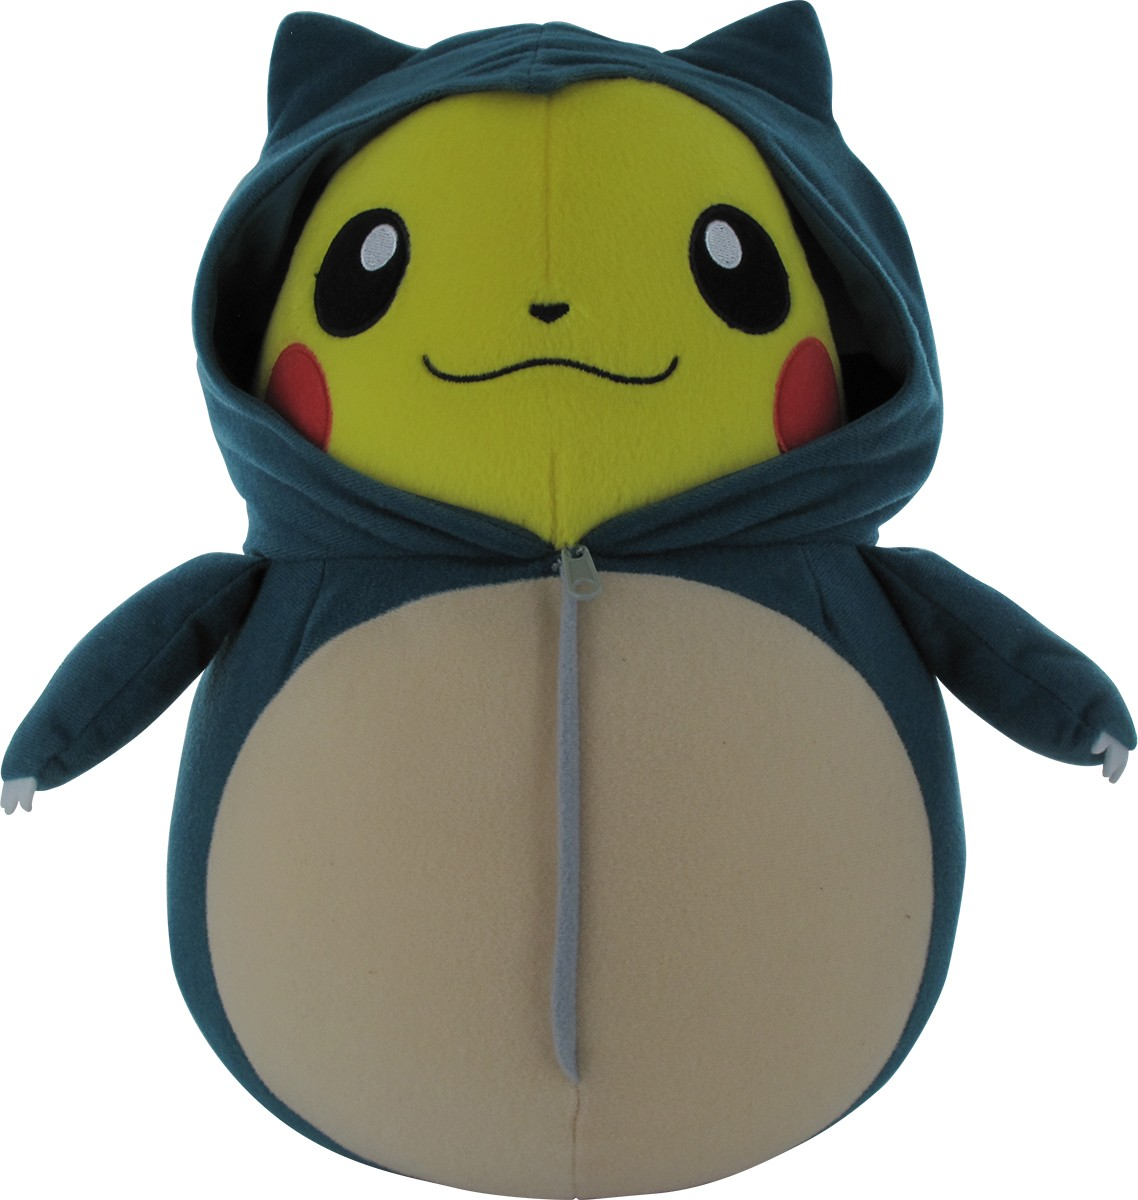 F9dcd100baa1cd1120df2850bd12c8fcc3ce2d50 also Magikarp Images additionally Pokemon X Y Analise Snorlax also 747qv in addition 143 Snorlax Pokemon Printable Coloring Pages Book 13498. on snorlax